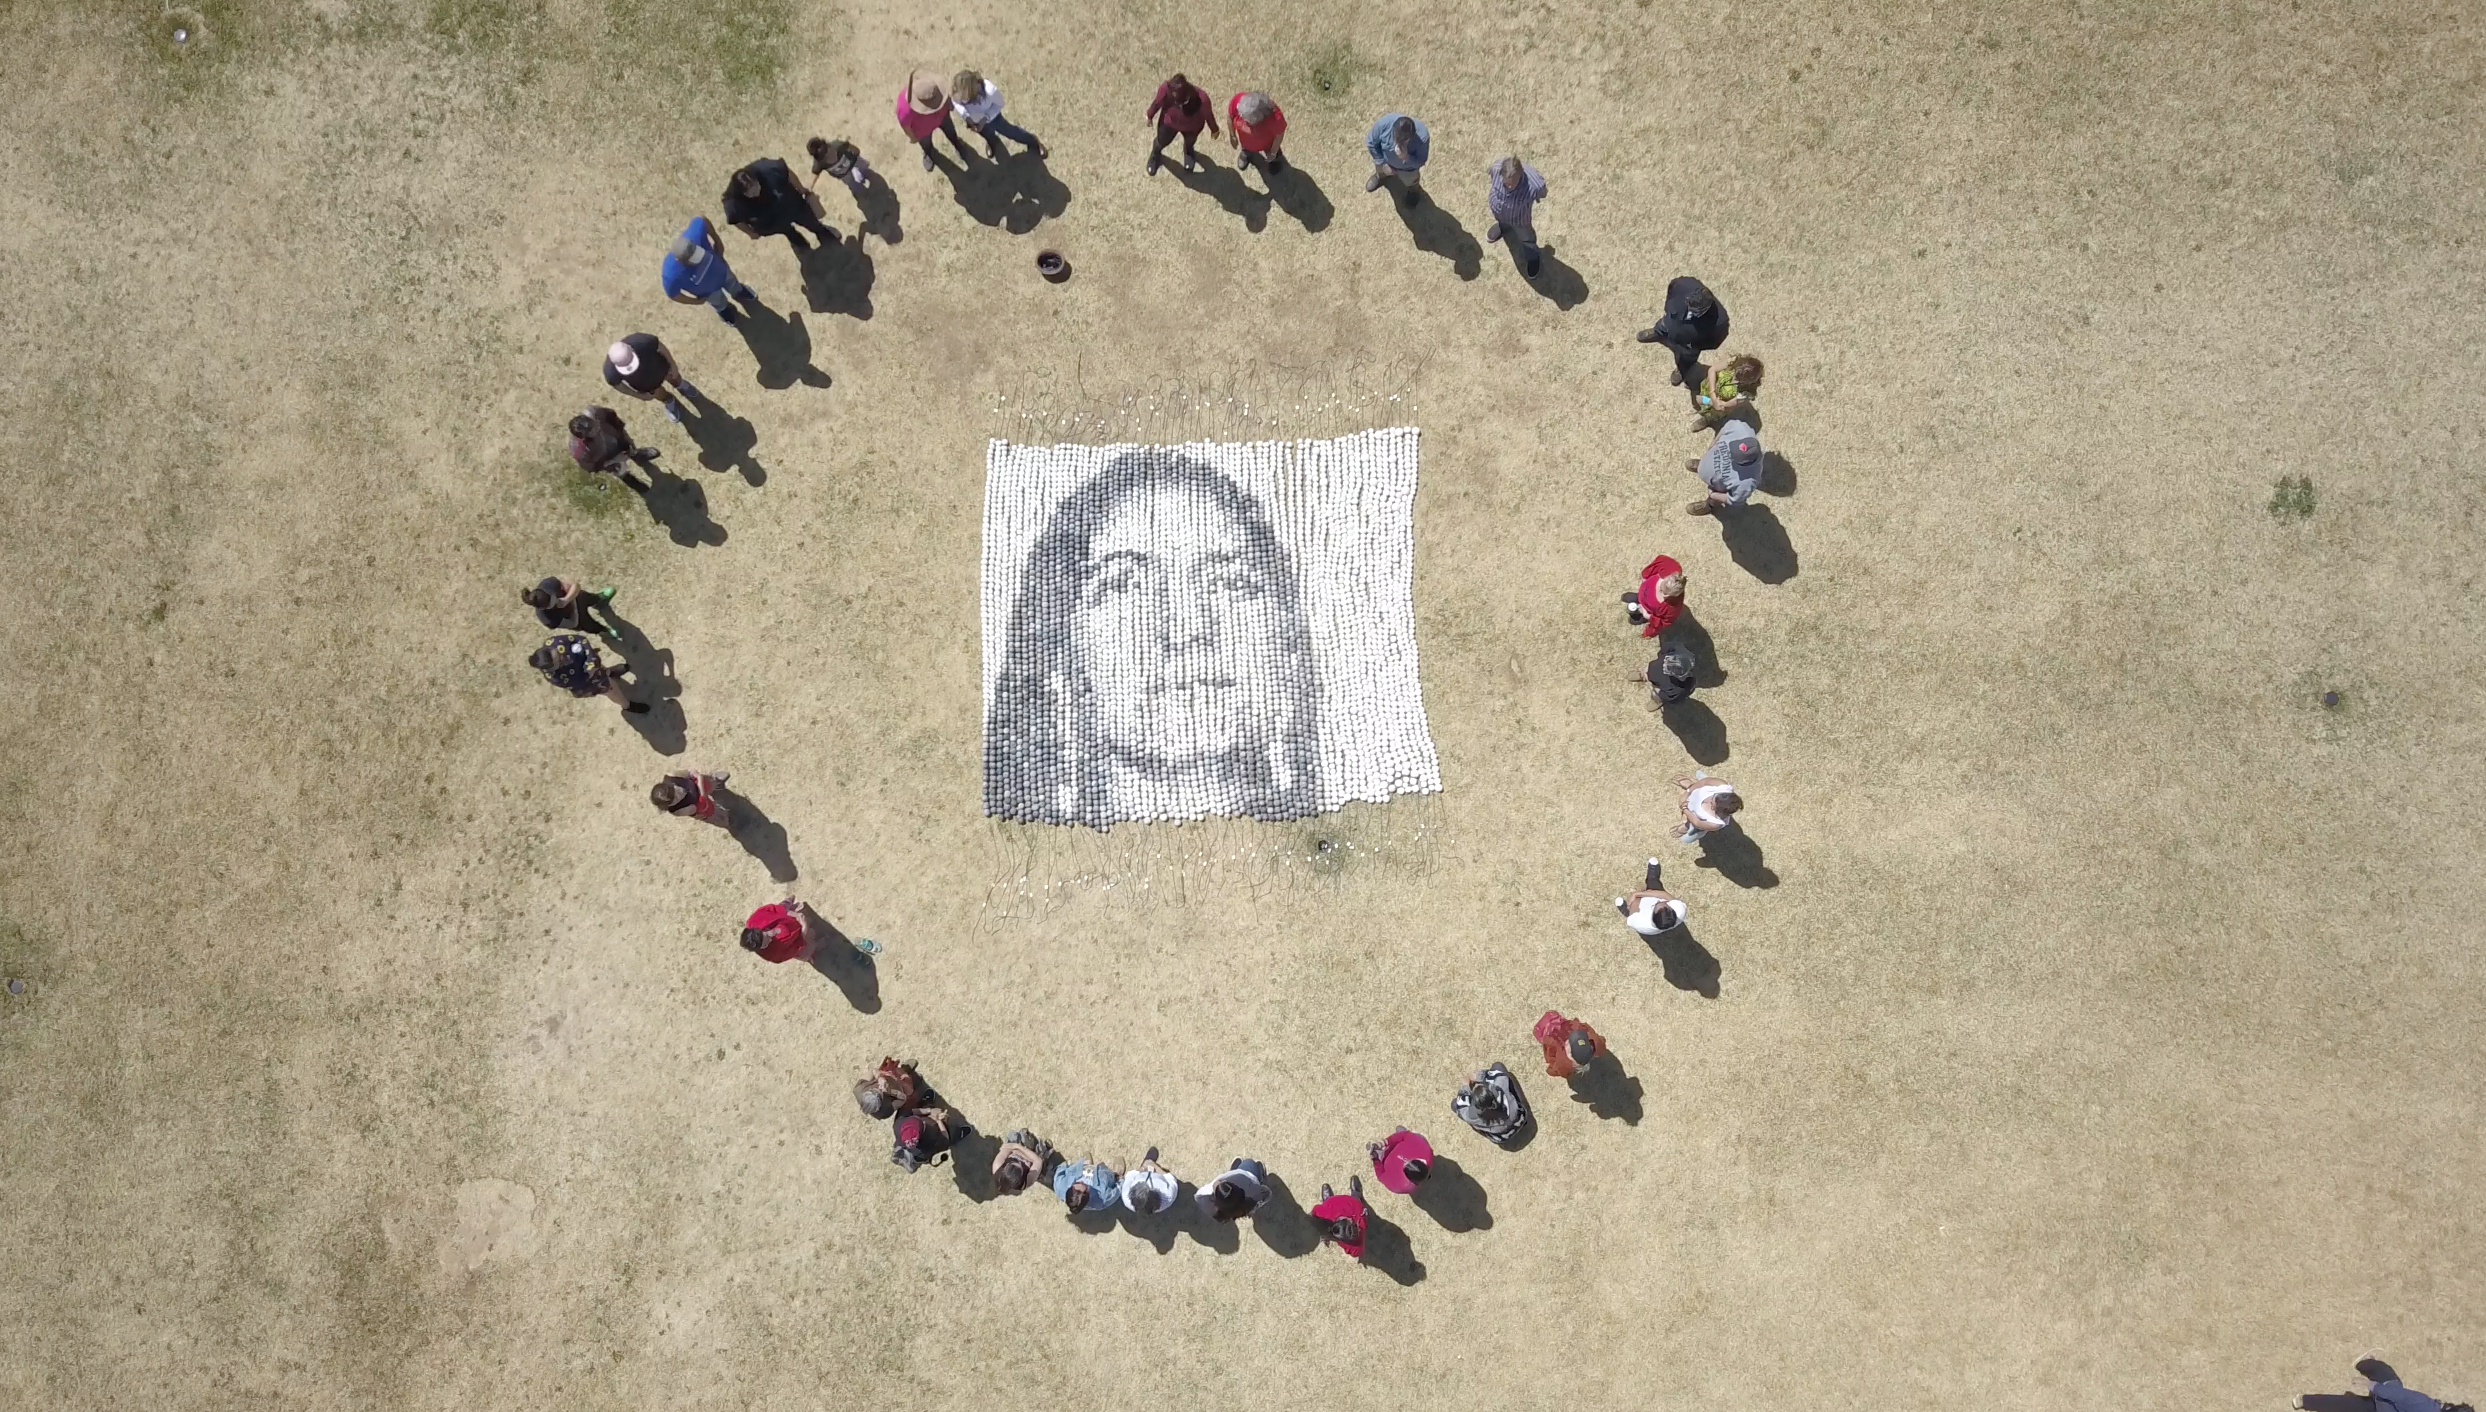 "12' H x 12' W beaded portrait using over 4,000 single 2"" clay beads   Every One . Social collaboration, sculptural installation. Cannupa Hanska Luger 2018.  Image: Red Shawl Solidarity Society prayer action at the Institute of American Indian Arts, Santa Fe, NM April 26, 2018"